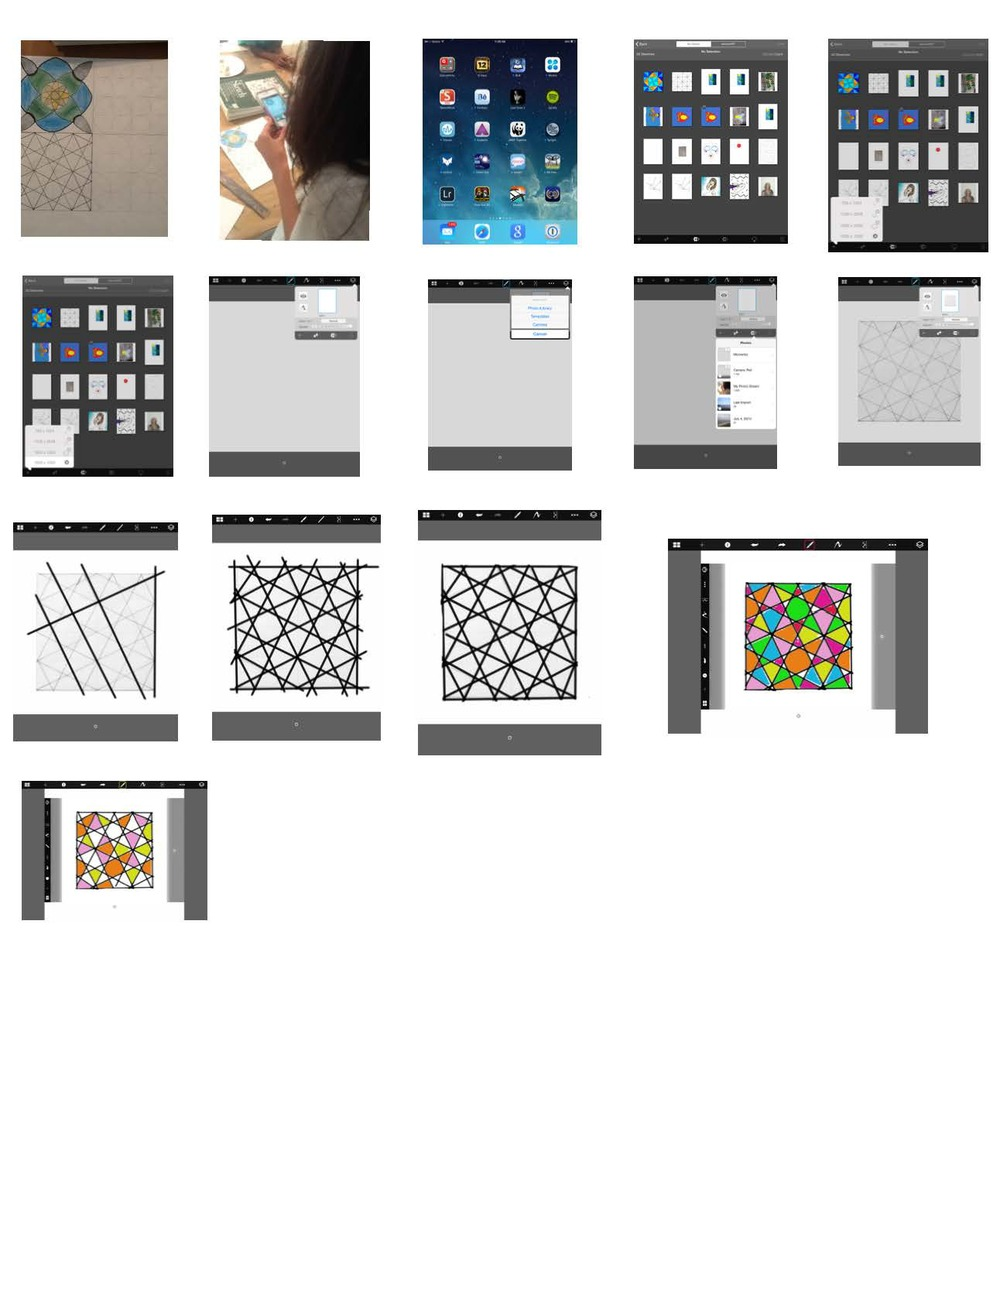 Pattern design pictures copy.jpg